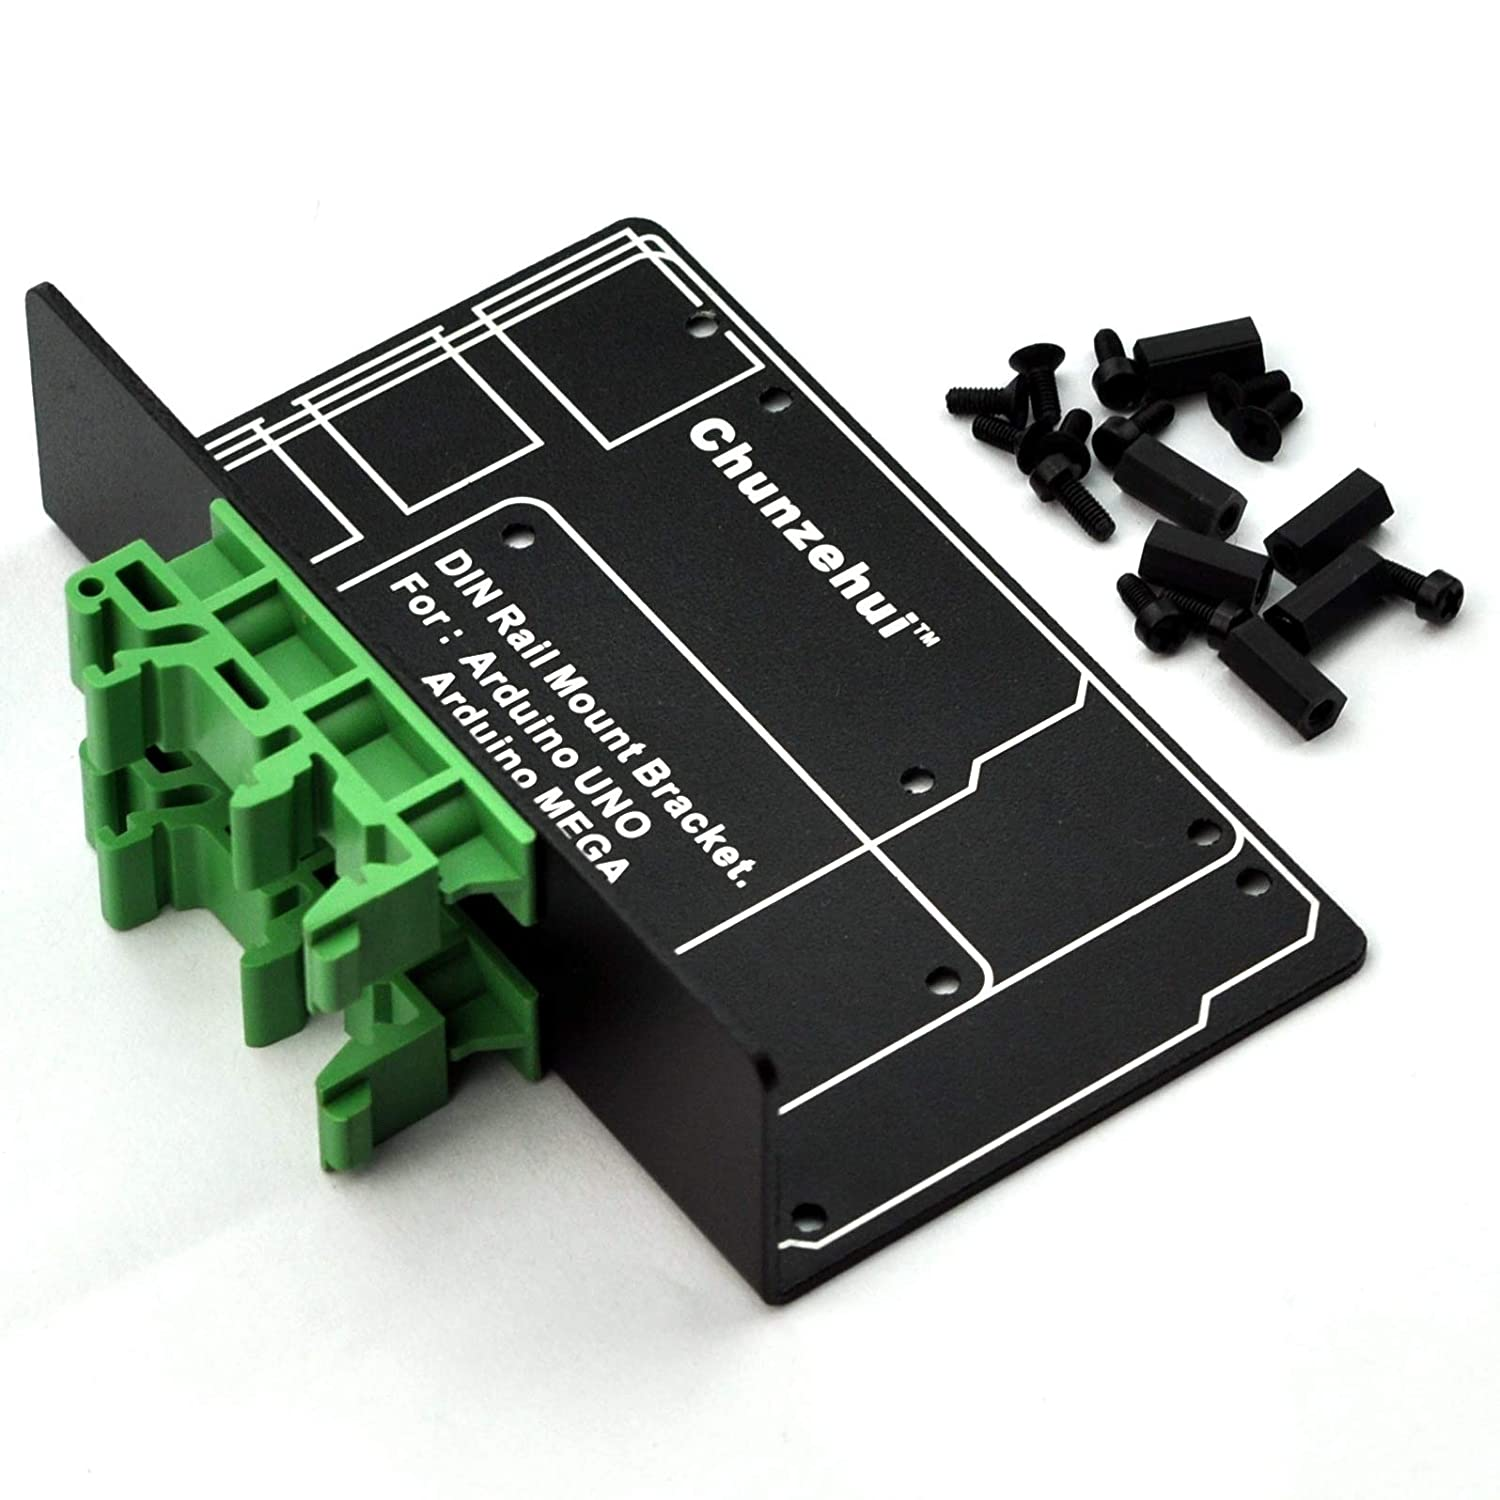 2 inch New 20 Set DIN Rail Mounting Standoff Brackets Set High Angled